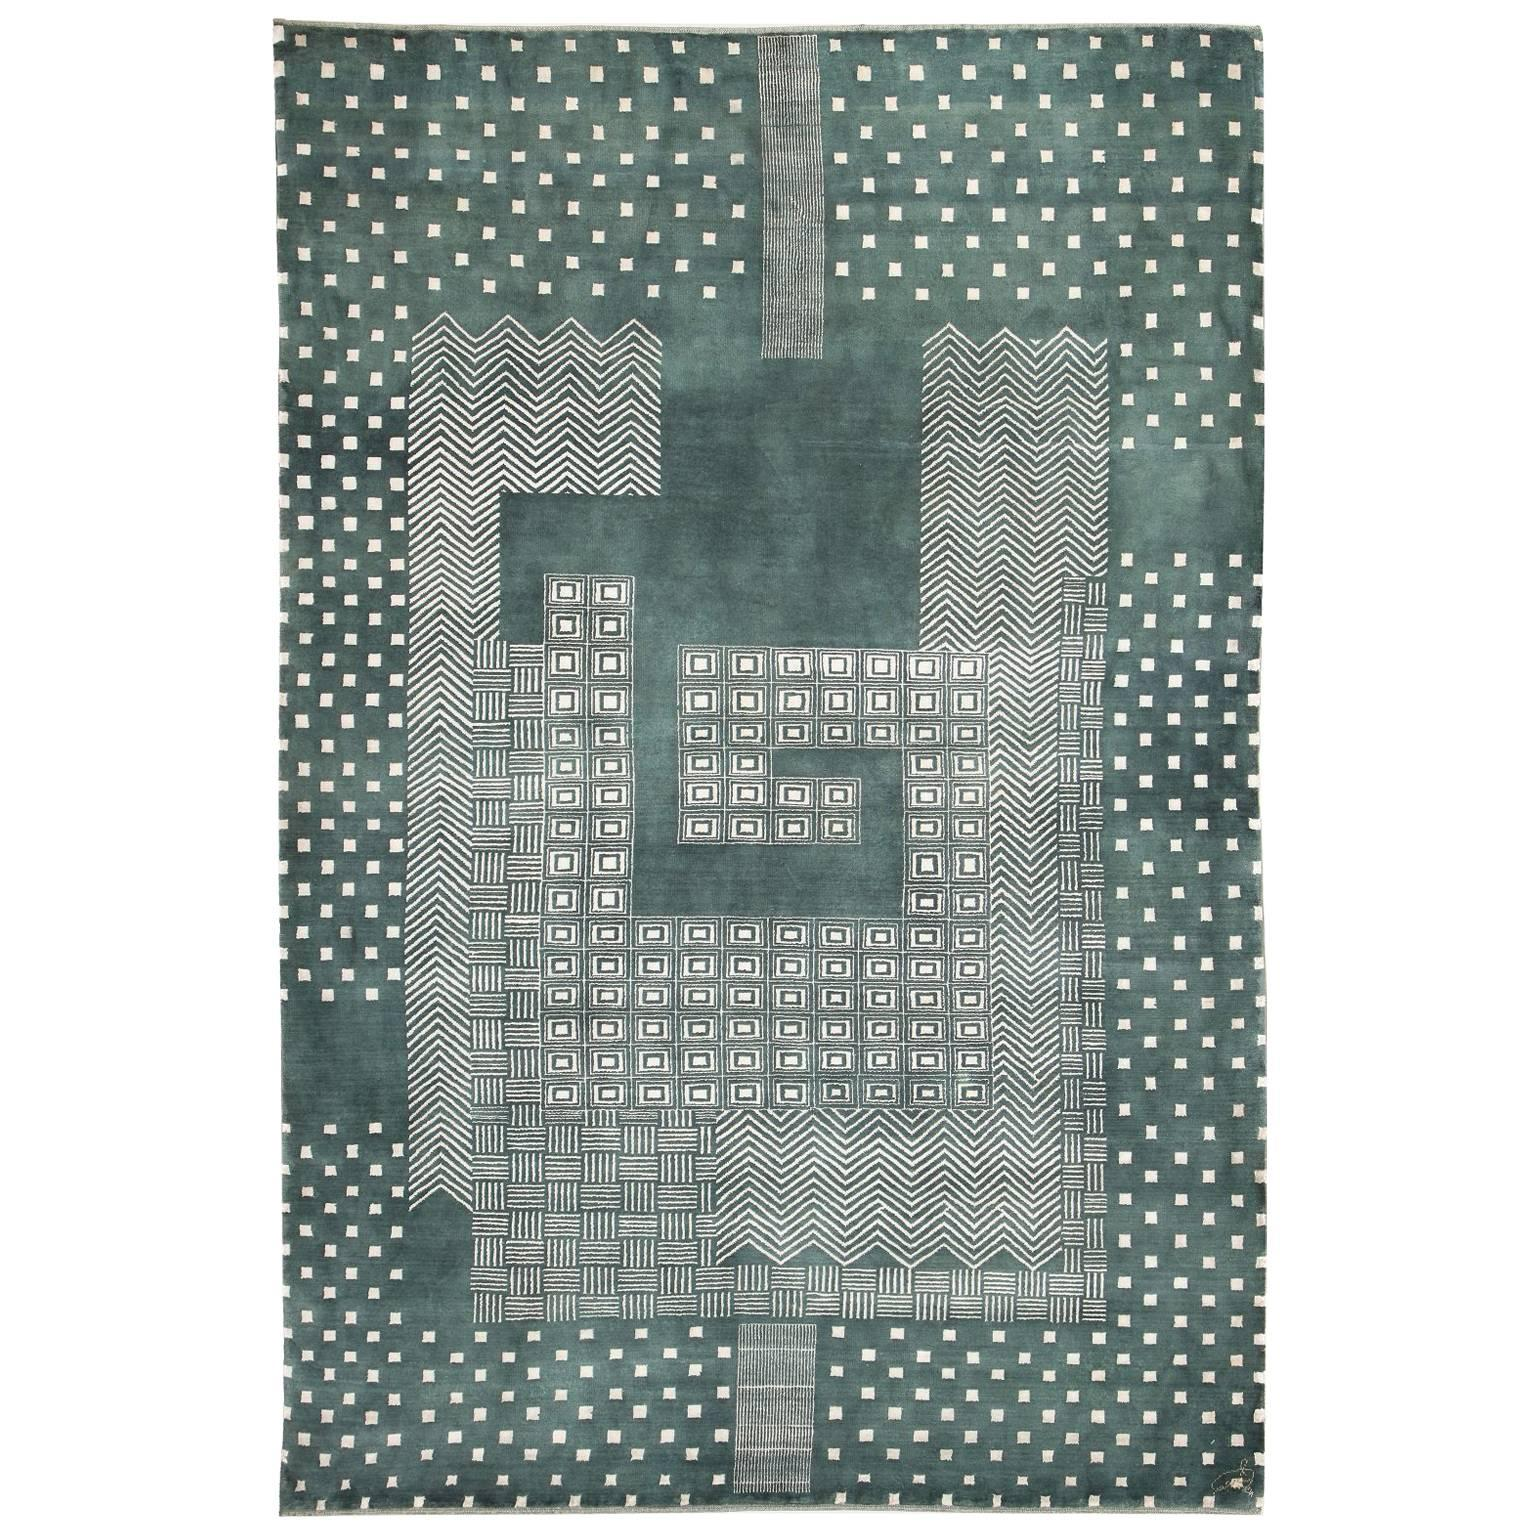 Orley Shabahang Signature Labyrinth Carpet in Handspun Wool and Vegetable Dyes